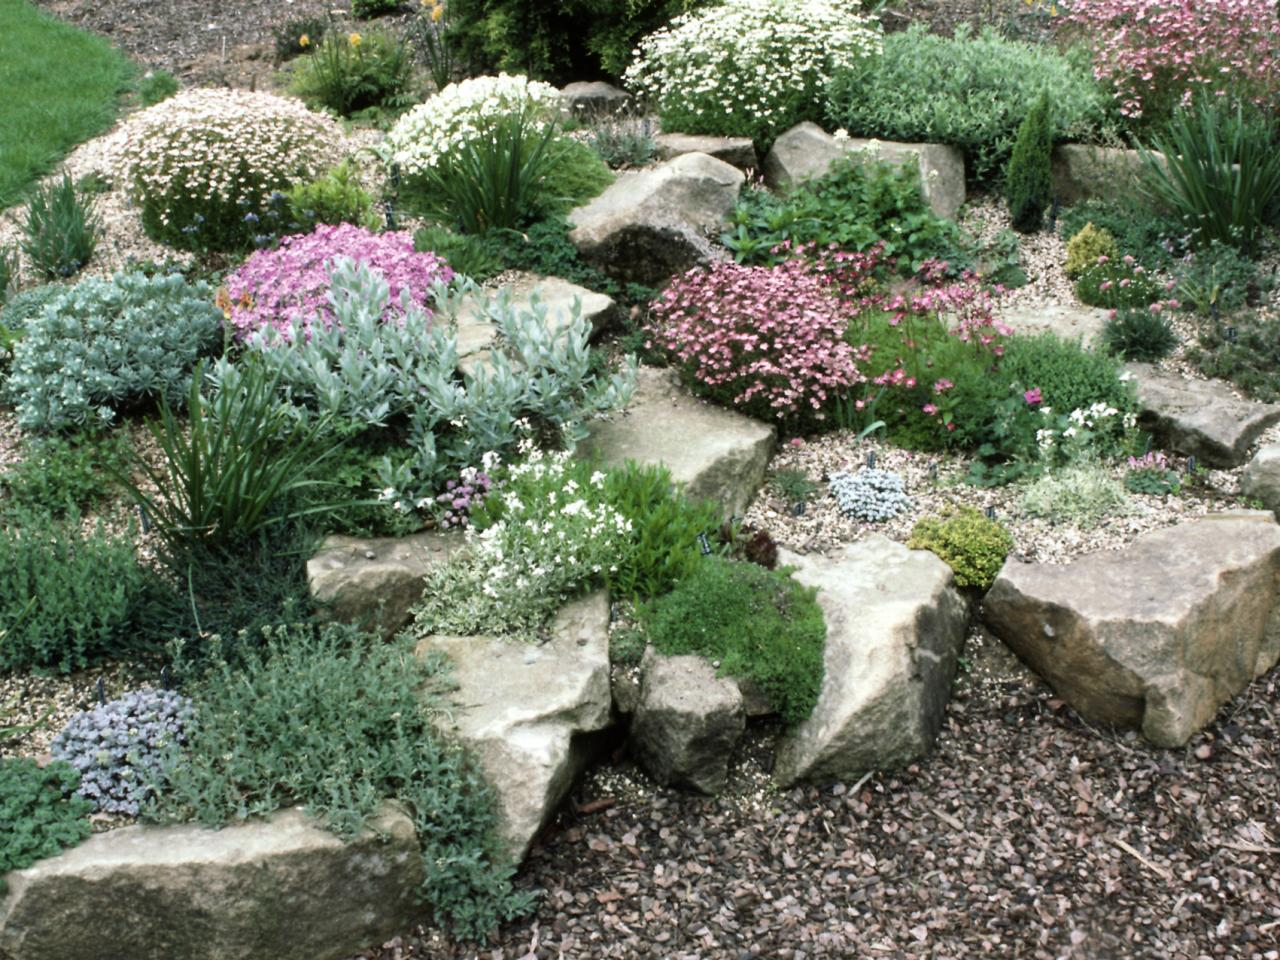 Rock Garden Plants For Zone 3 - Garden Designs on